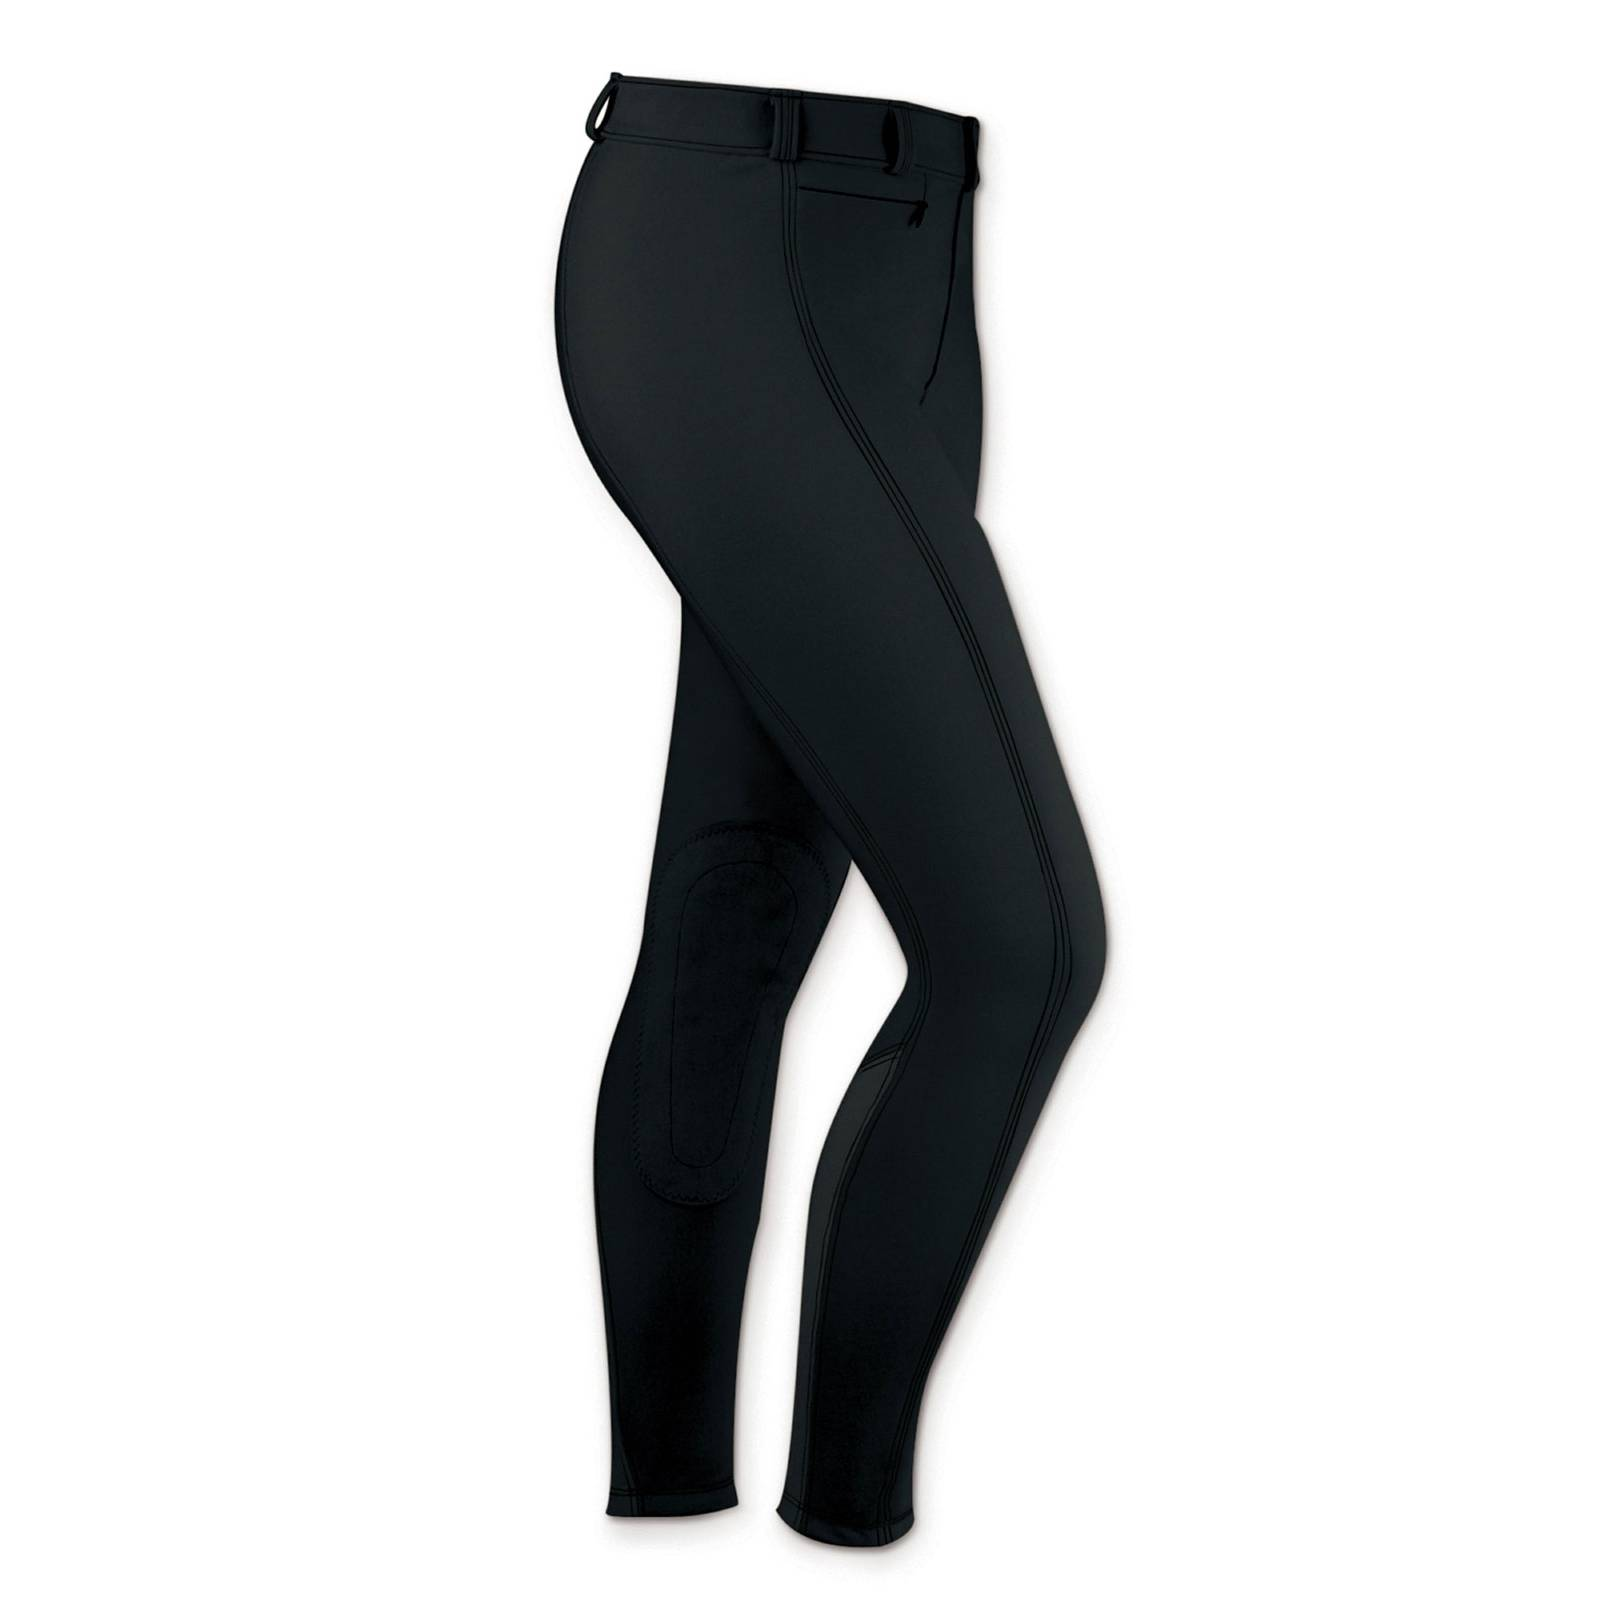 Outlet - Irideon Ladies Bellissima Full Seat Riding Breeches, 30 Long, Black